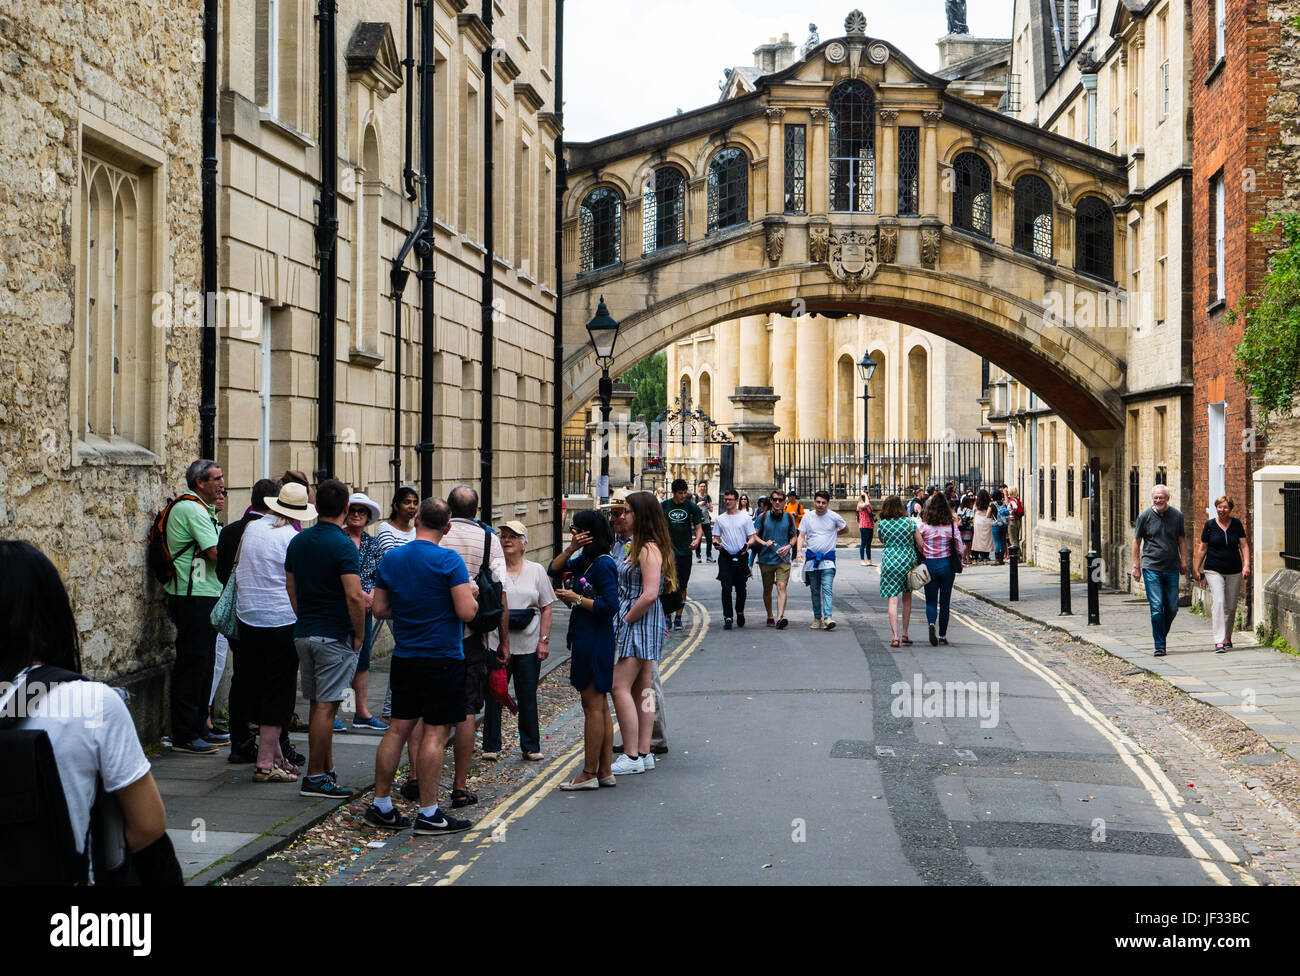 The Bridge of Sighs, New College Lane, Oxford, Oxfordshire, England - Stock Image